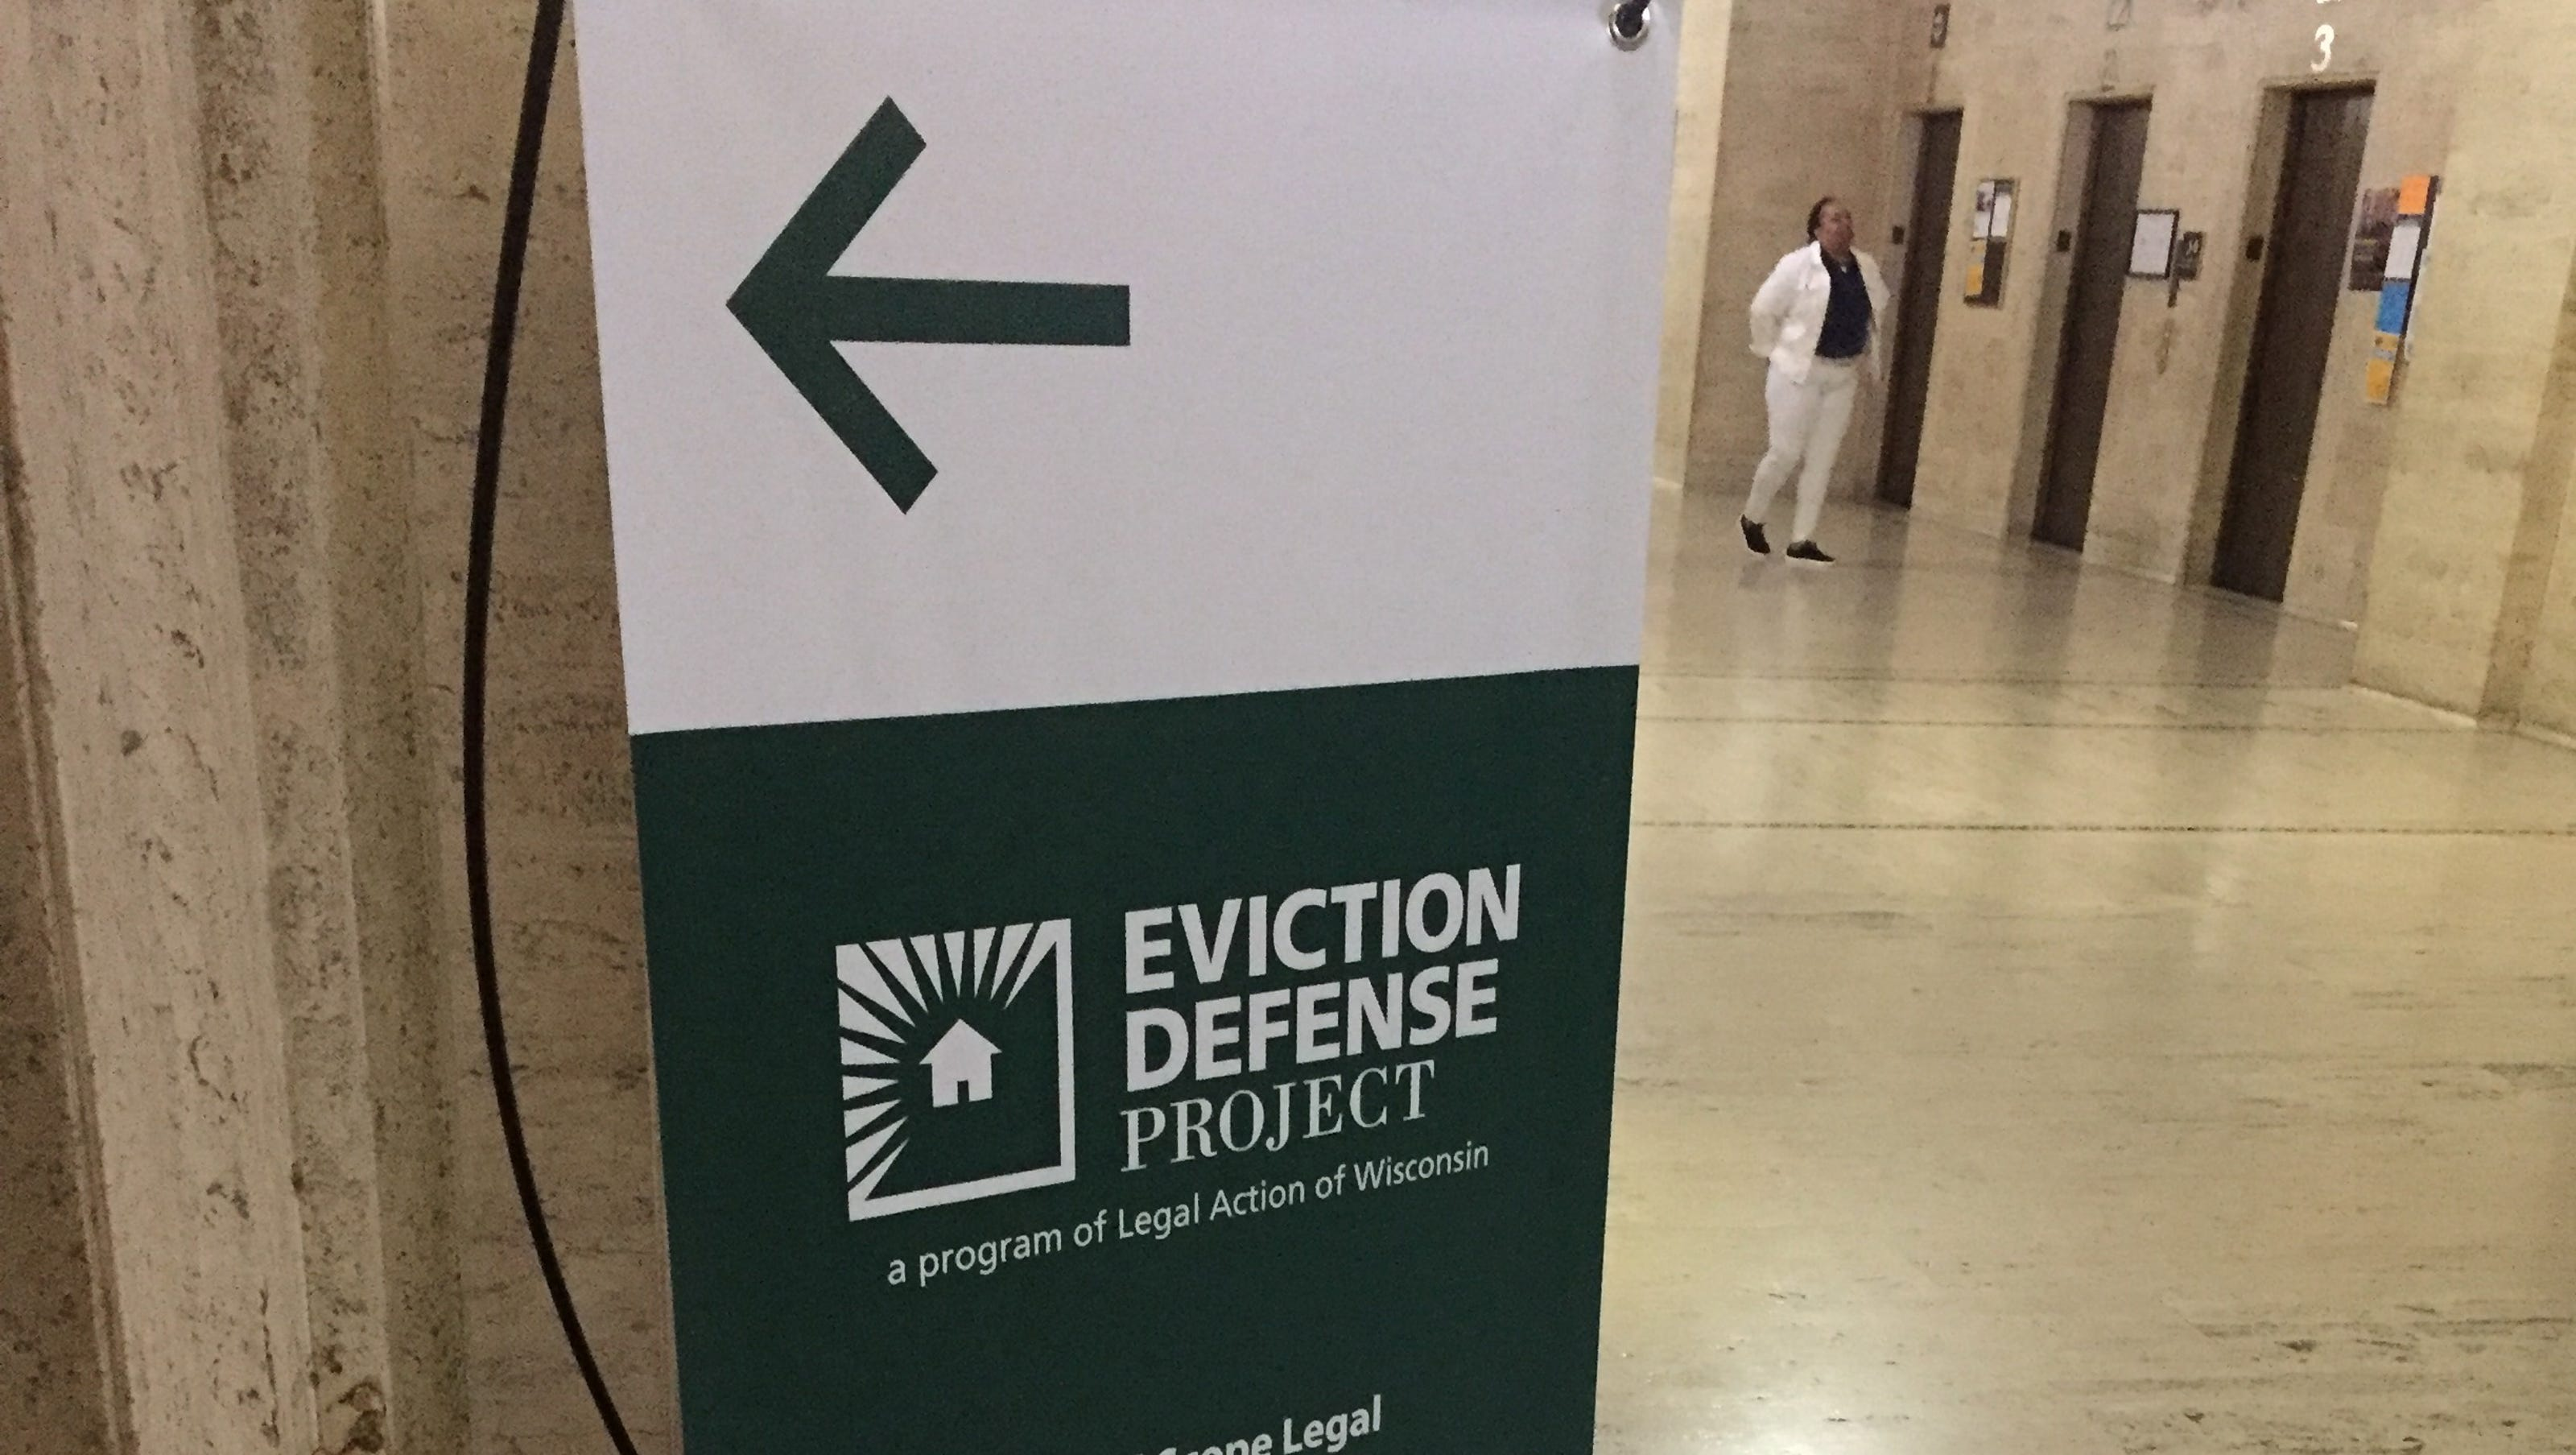 Lawyers Want To Help Poor Tenants Facing Eviction This Could Stop Them